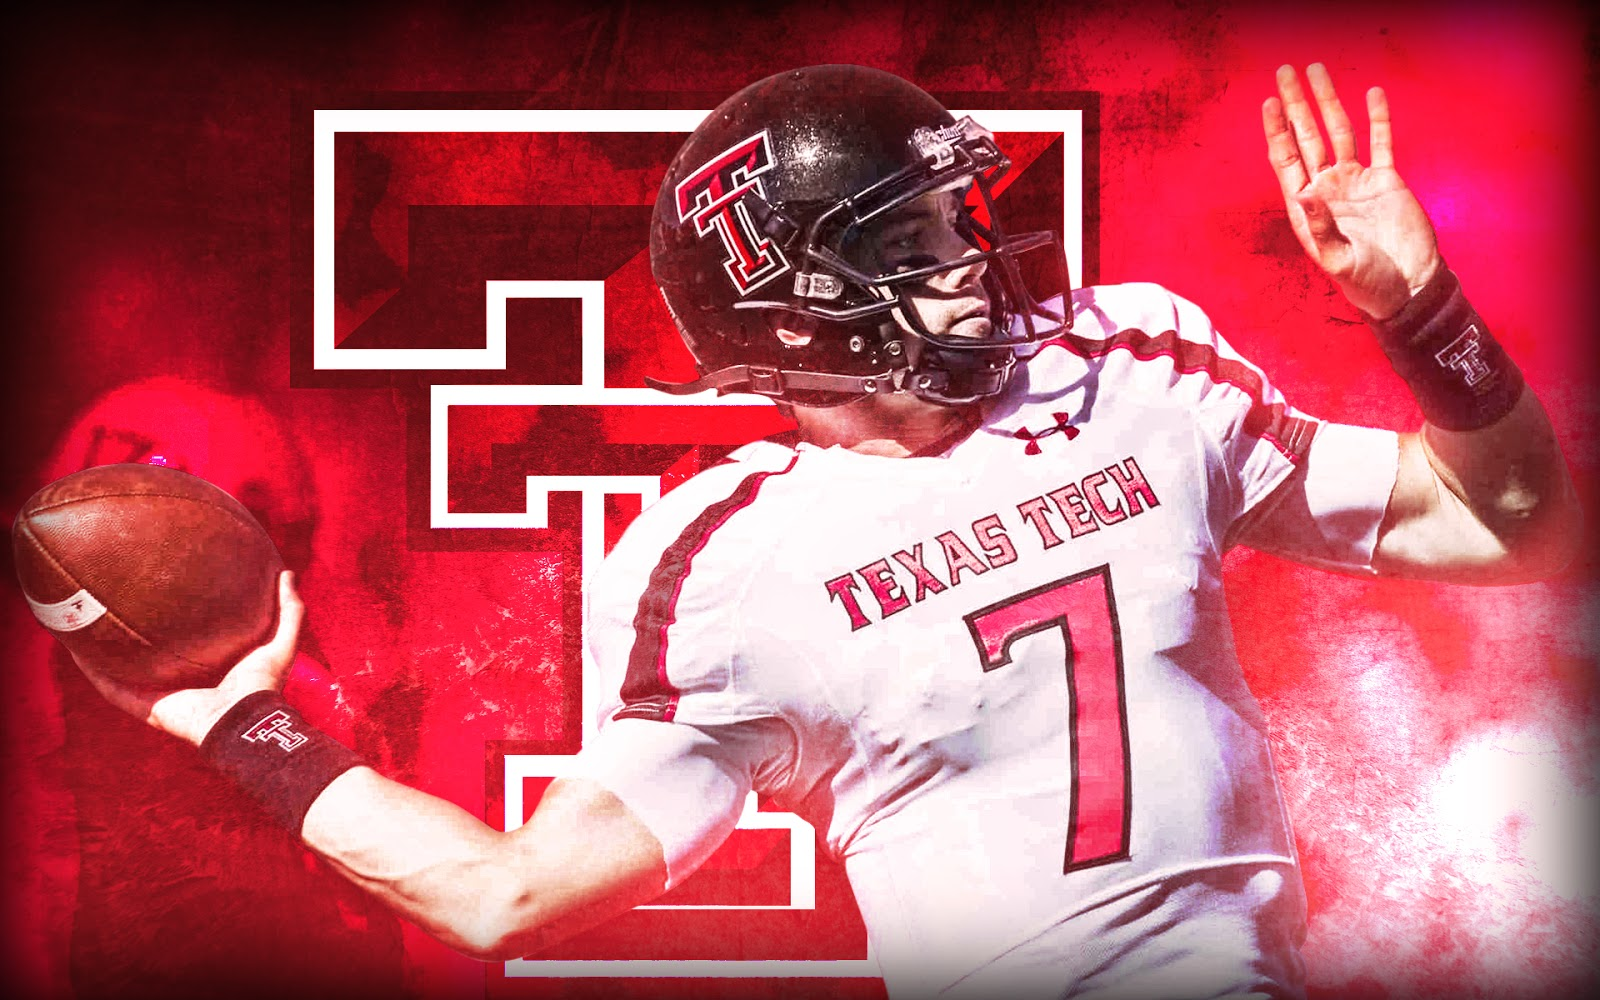 Texas Tech Red Raiders 1600x1000